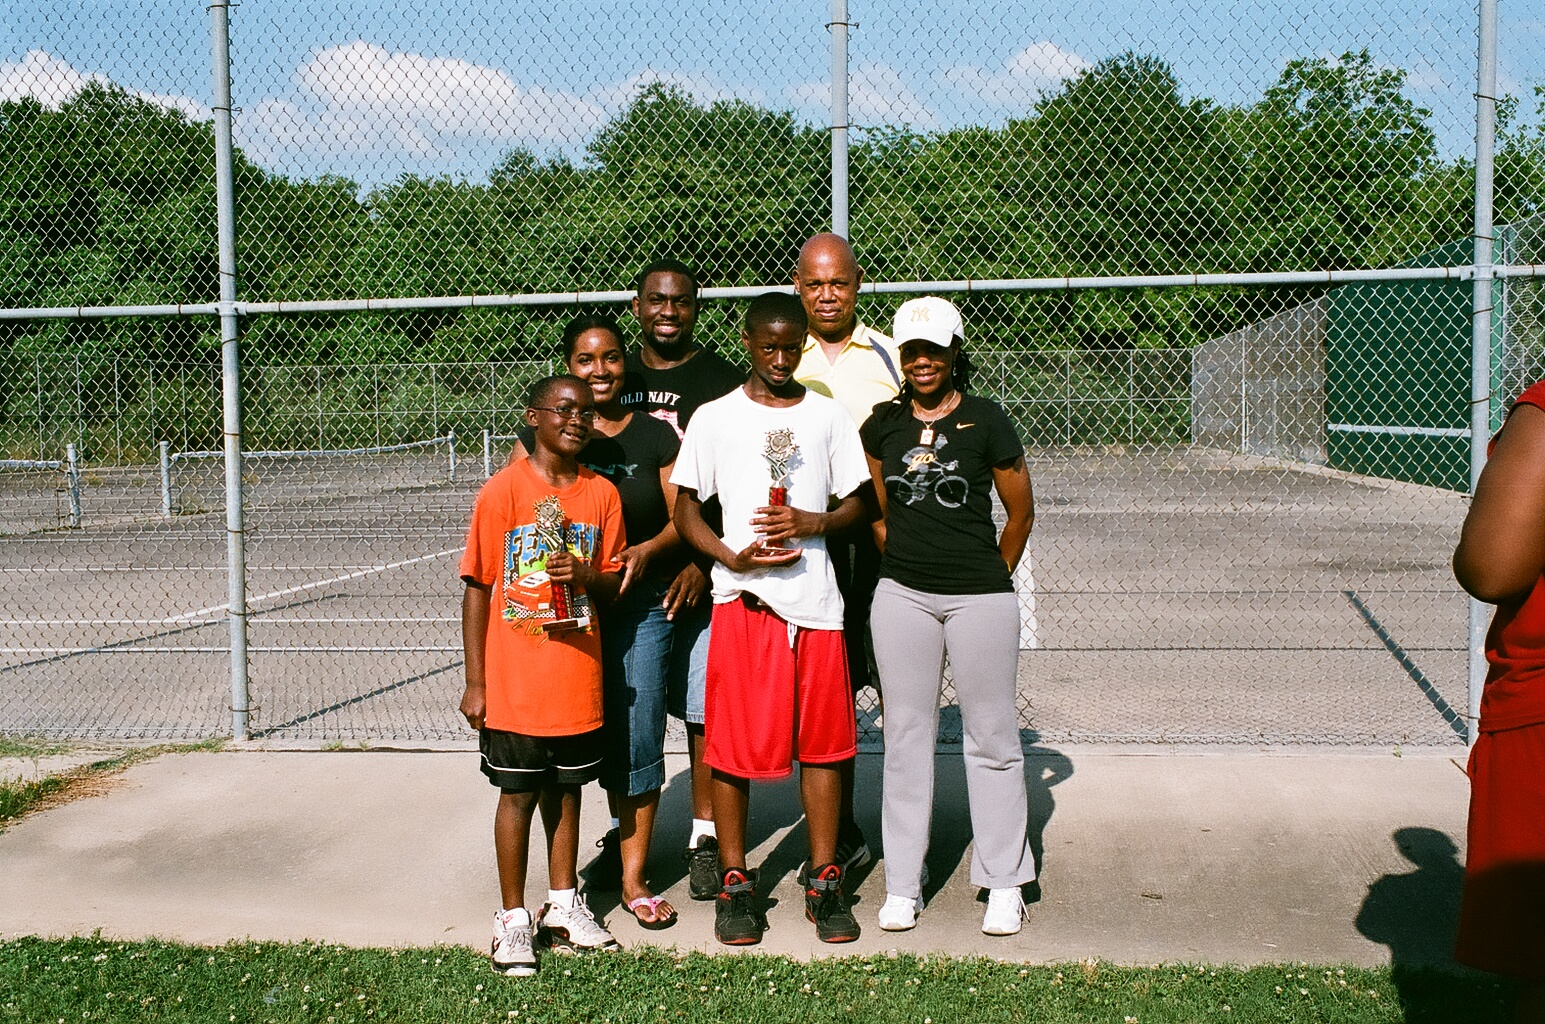 Tennis group photo with family